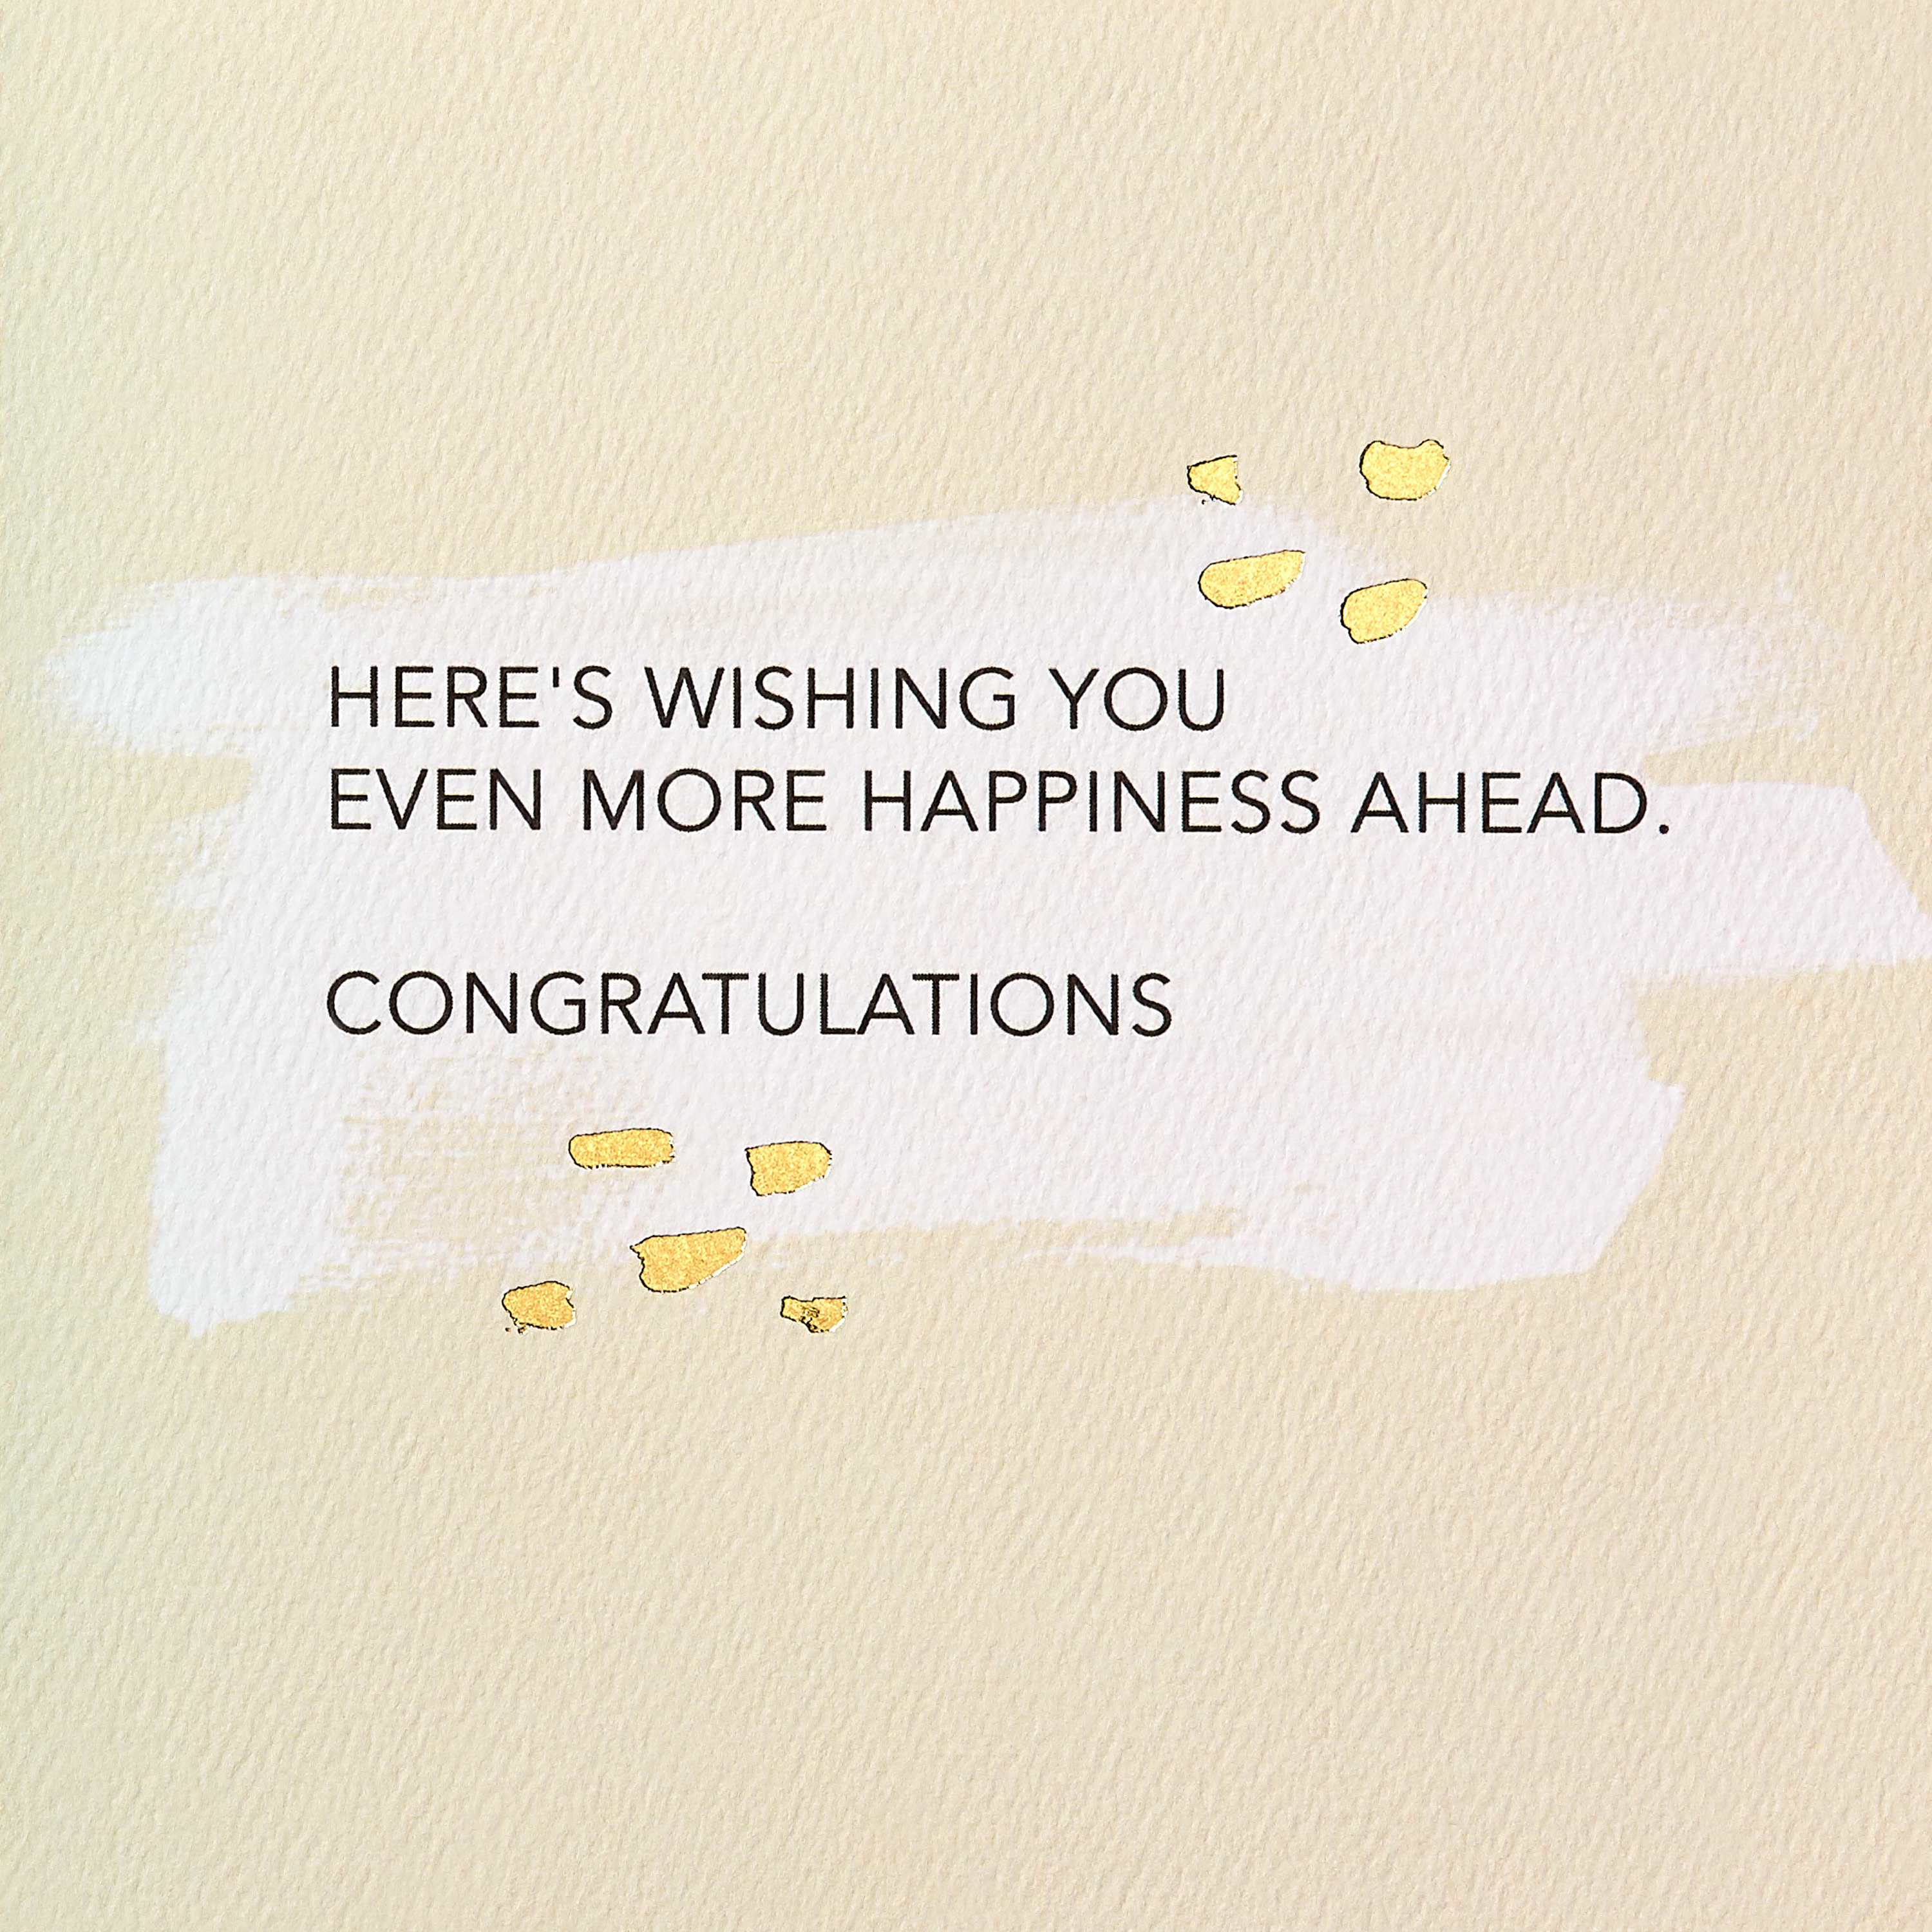 Cheers Greeting Card - Congratulations, Graduation, Wedding, New Job, Promotion, Retirement, New Home image